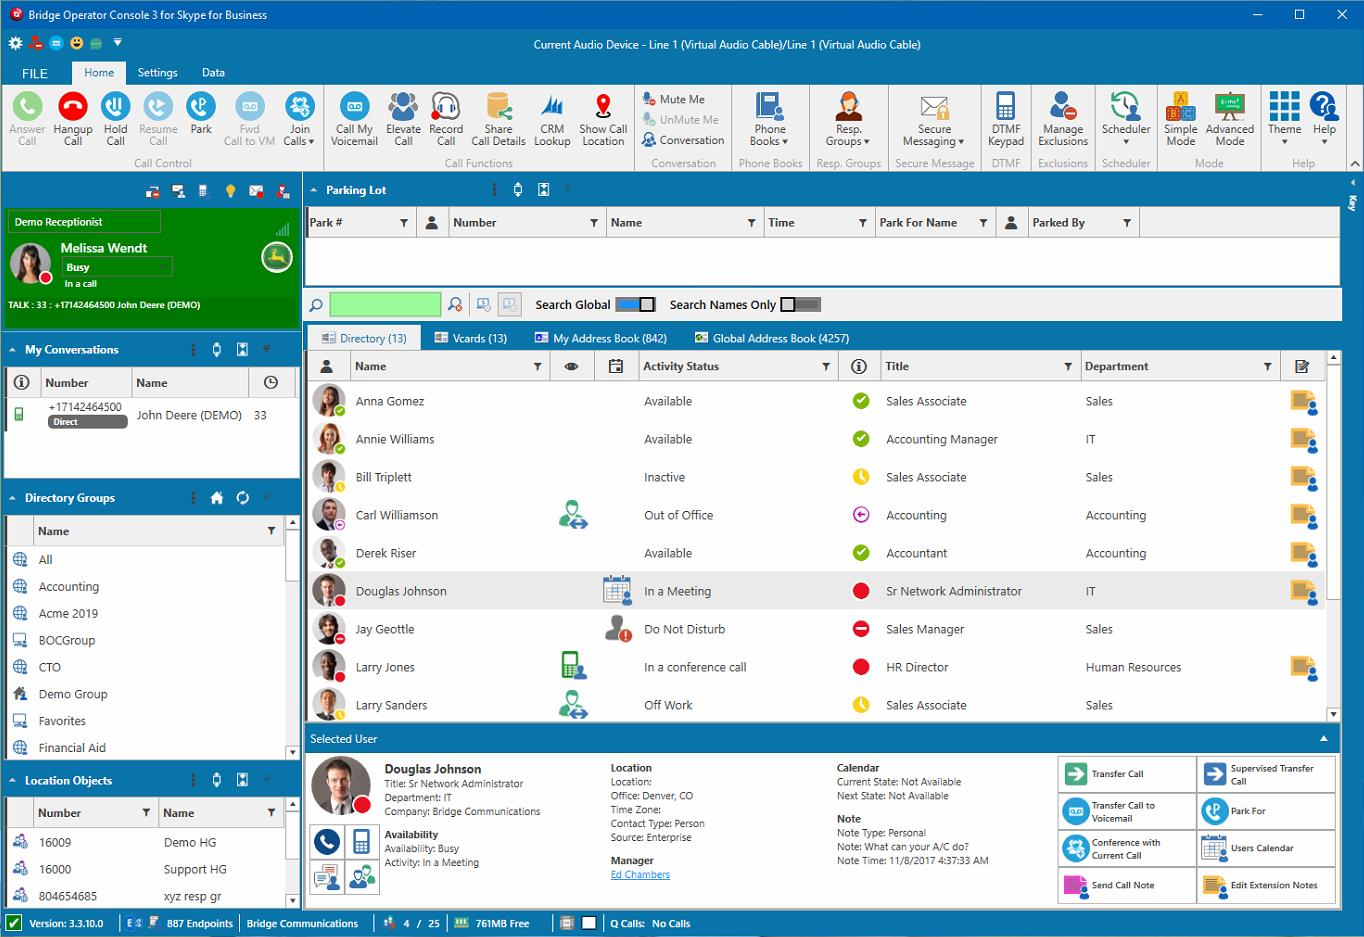 Bridge Lync (Skype for Business) Operator Console